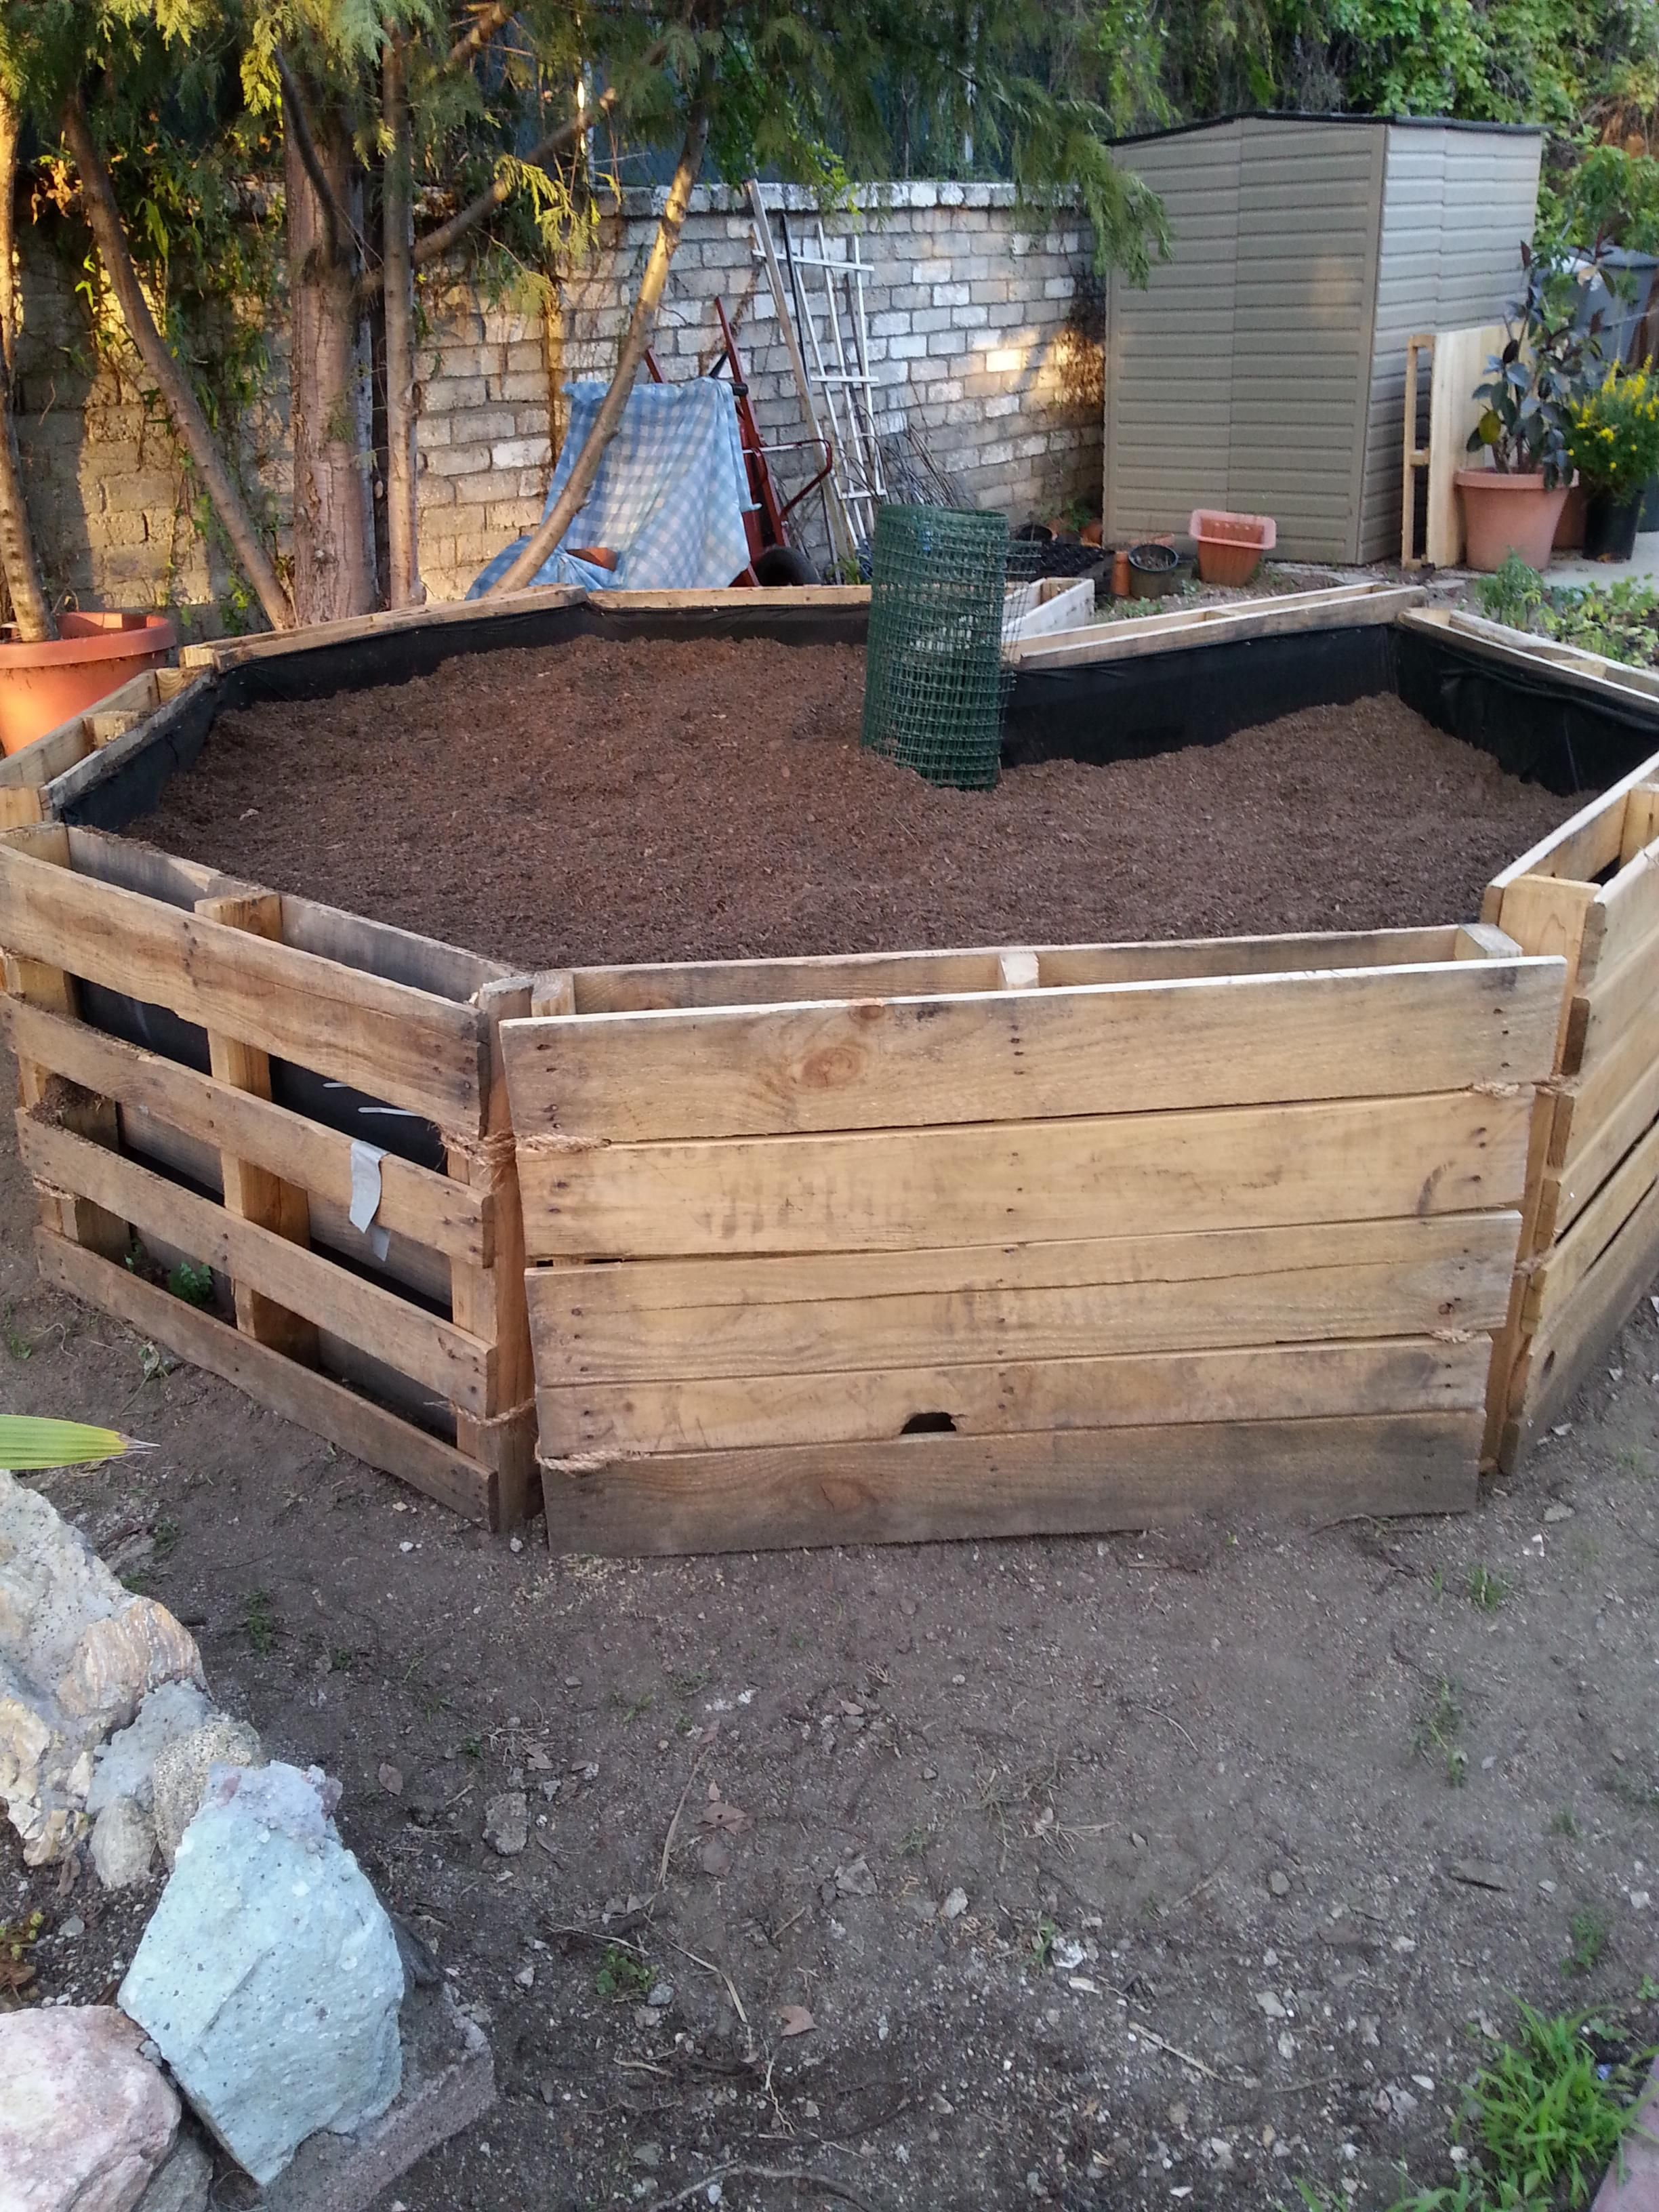 Built this DIY Keyhole Garden with recycled wooden pallets. - Album ...